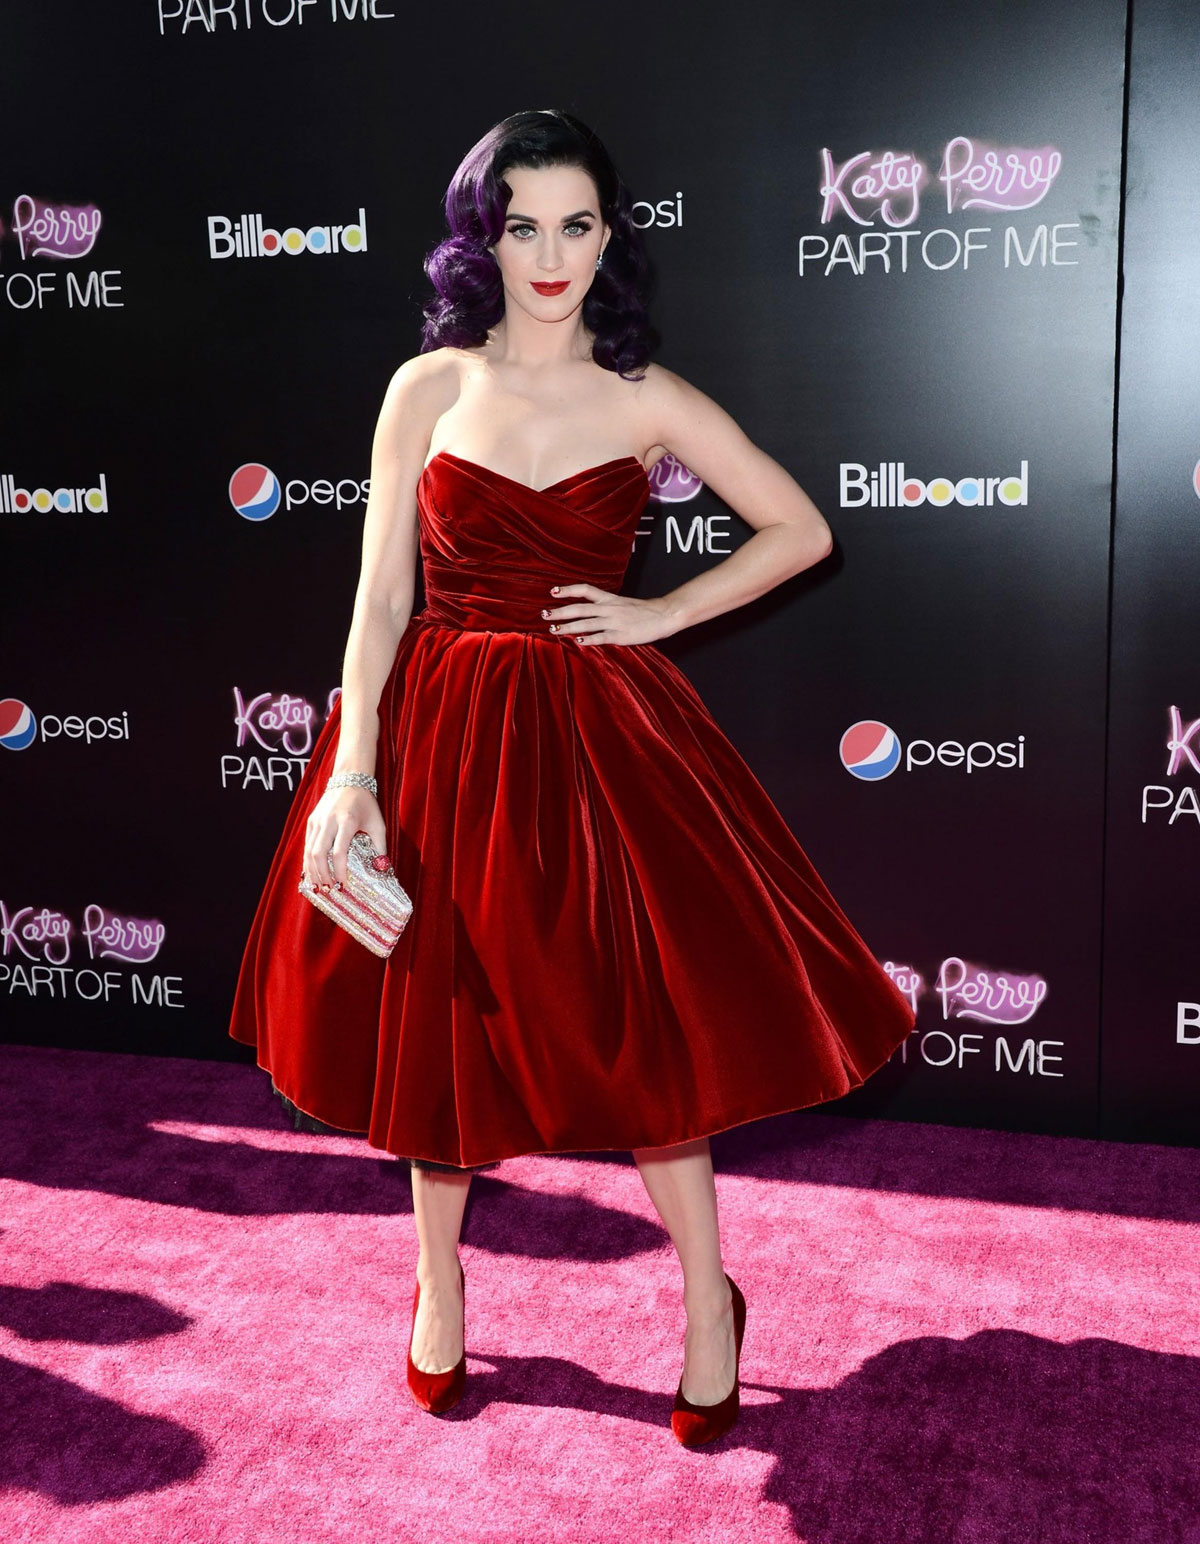 e61821f7 KATY PERRY. KATY PERRY at Katy Perry Part of Me Premiere ...